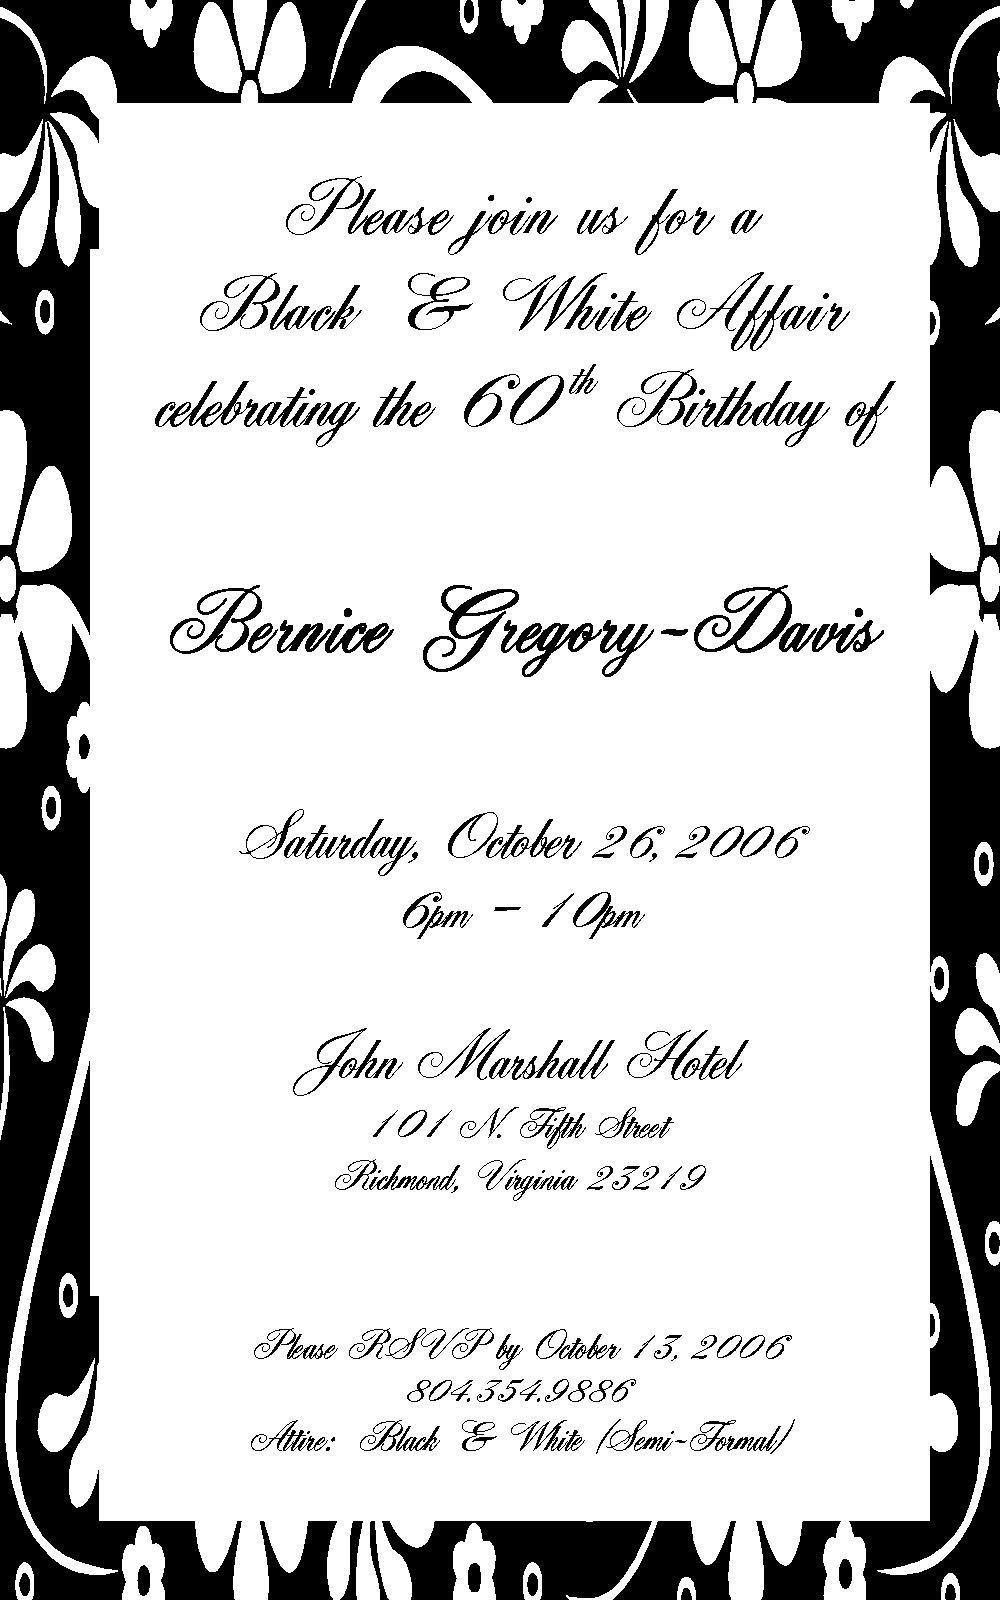 Birthday Invitation Sample  How To Word A Birthday Invitation